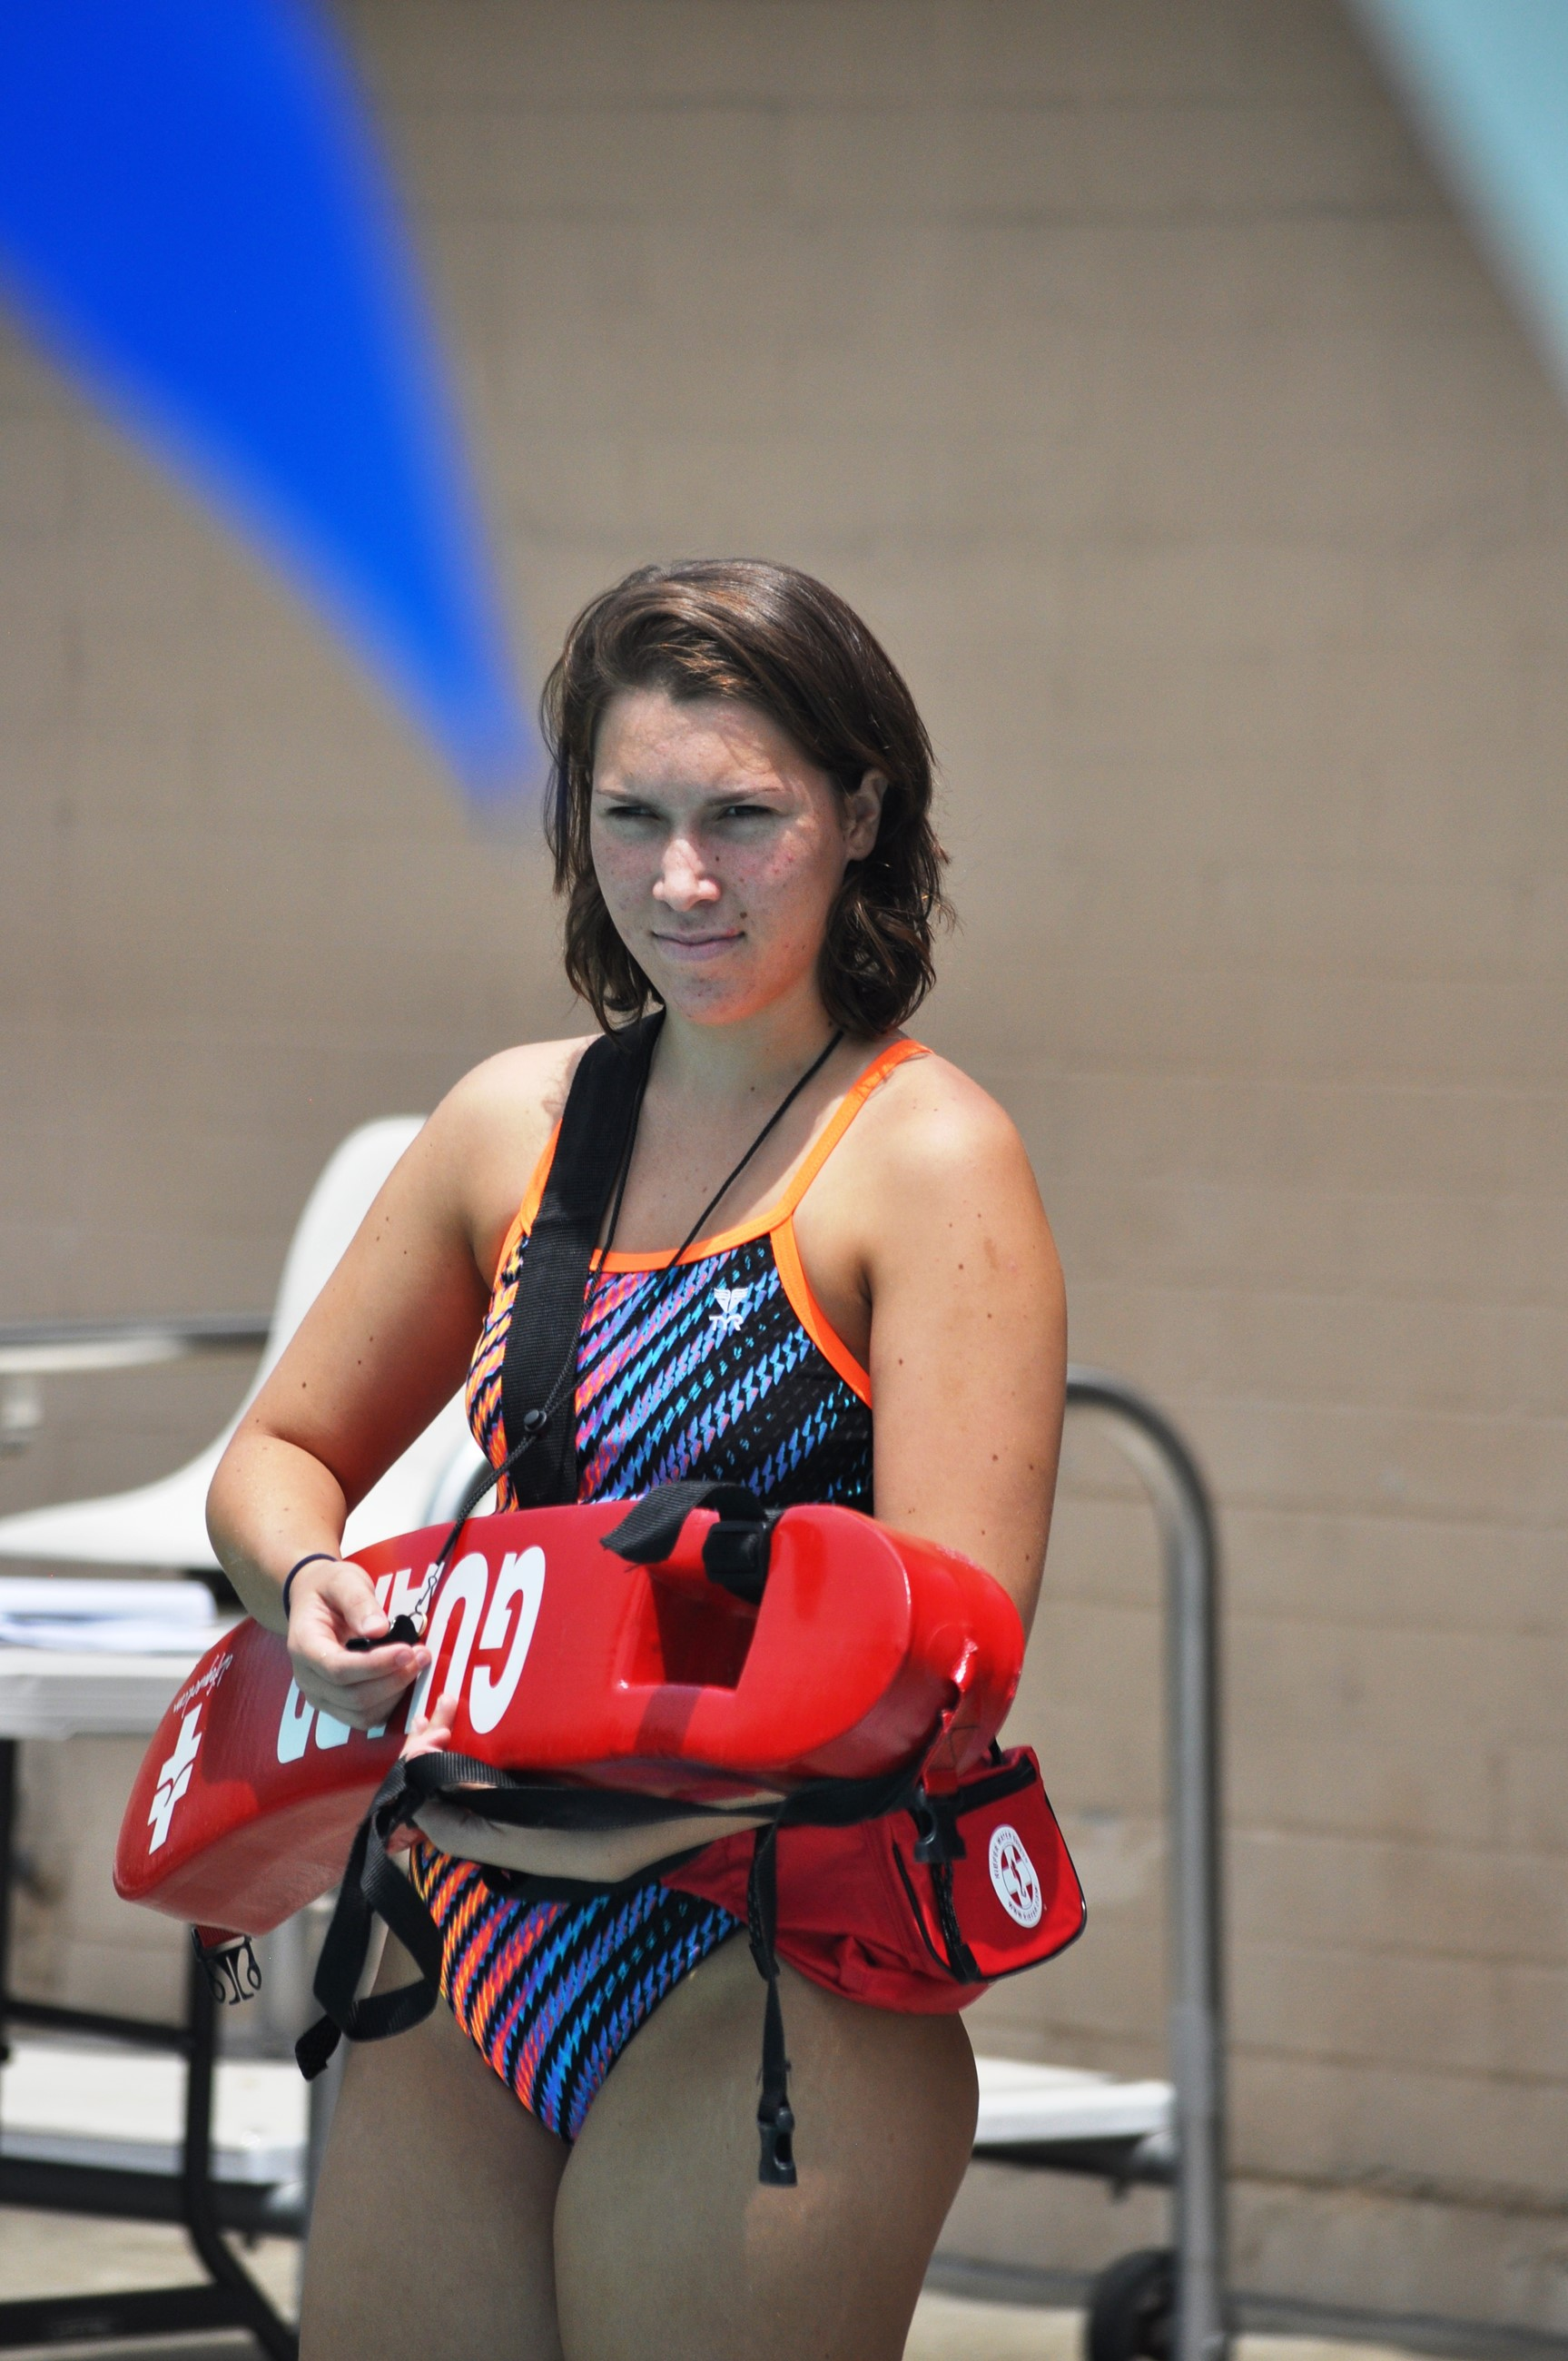 lifeguard smith park pool aquatics parks and recreation lifeguard swim lessons instruction water safety